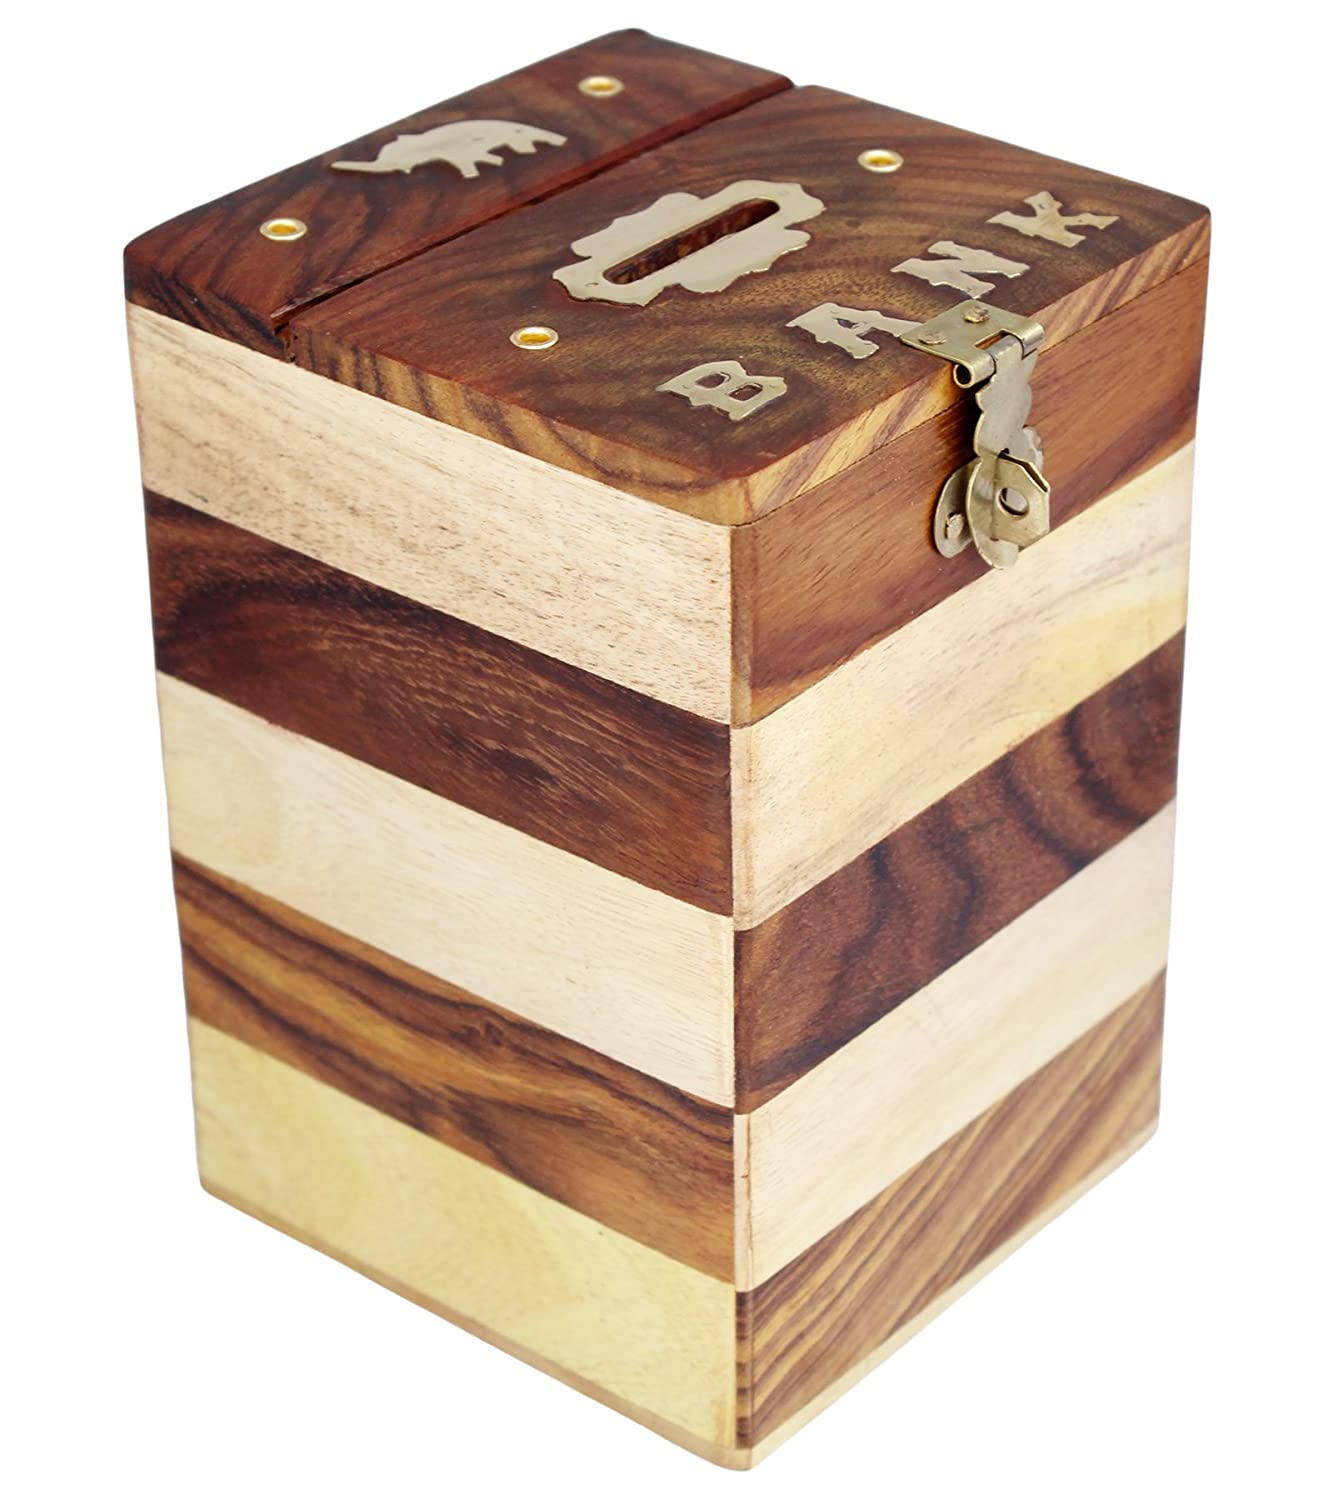 Mango wood Wooden Piggy Bank - Money Bank - Coin Box - Money Box - Gift Items for Kids